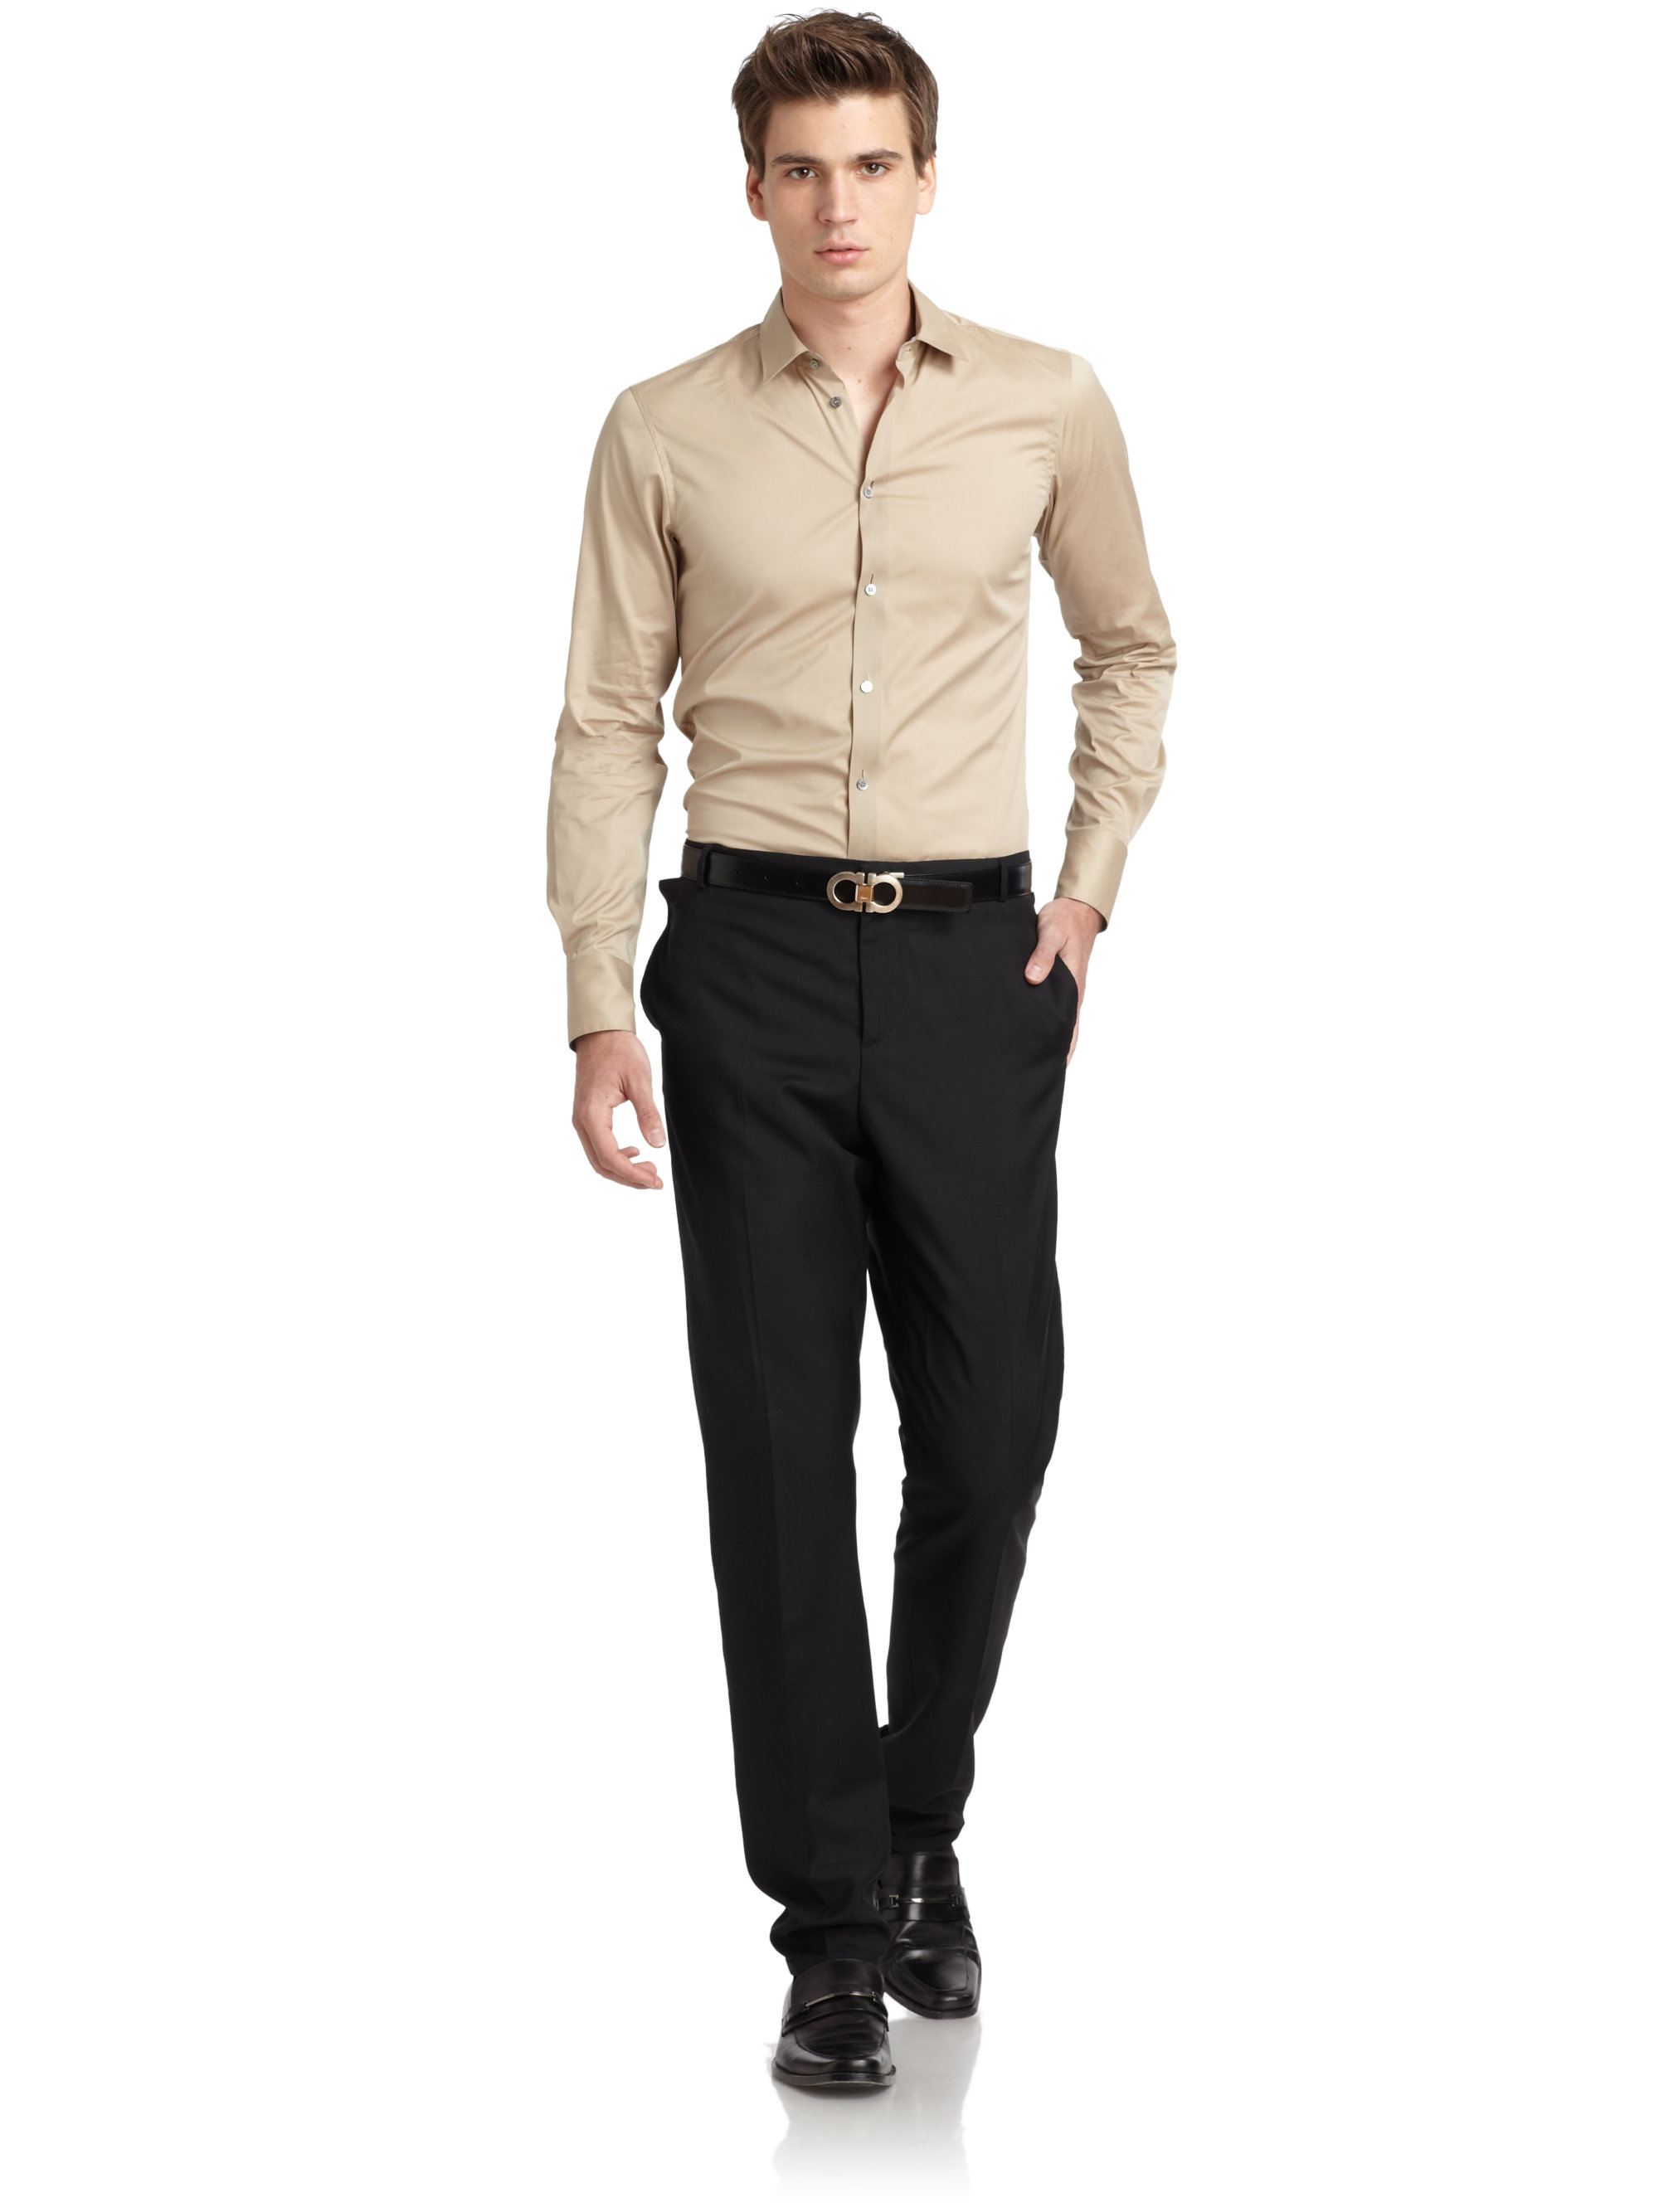 Lyst - Costume national Slim Fit Buttondown Shirt in Natural for Men